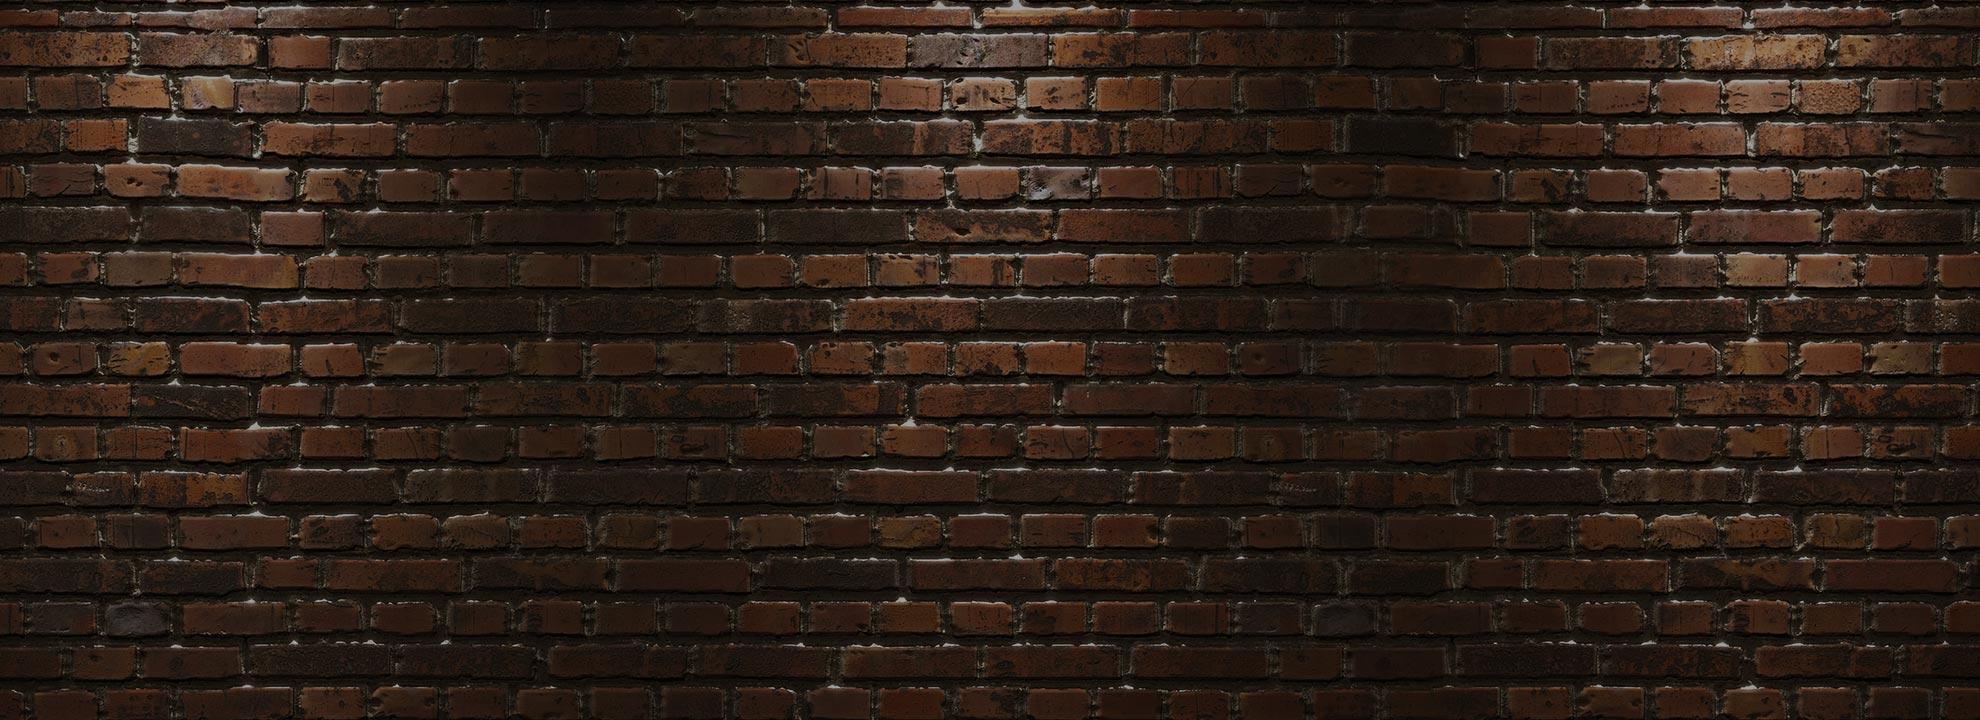 BrickWall-Darkbig